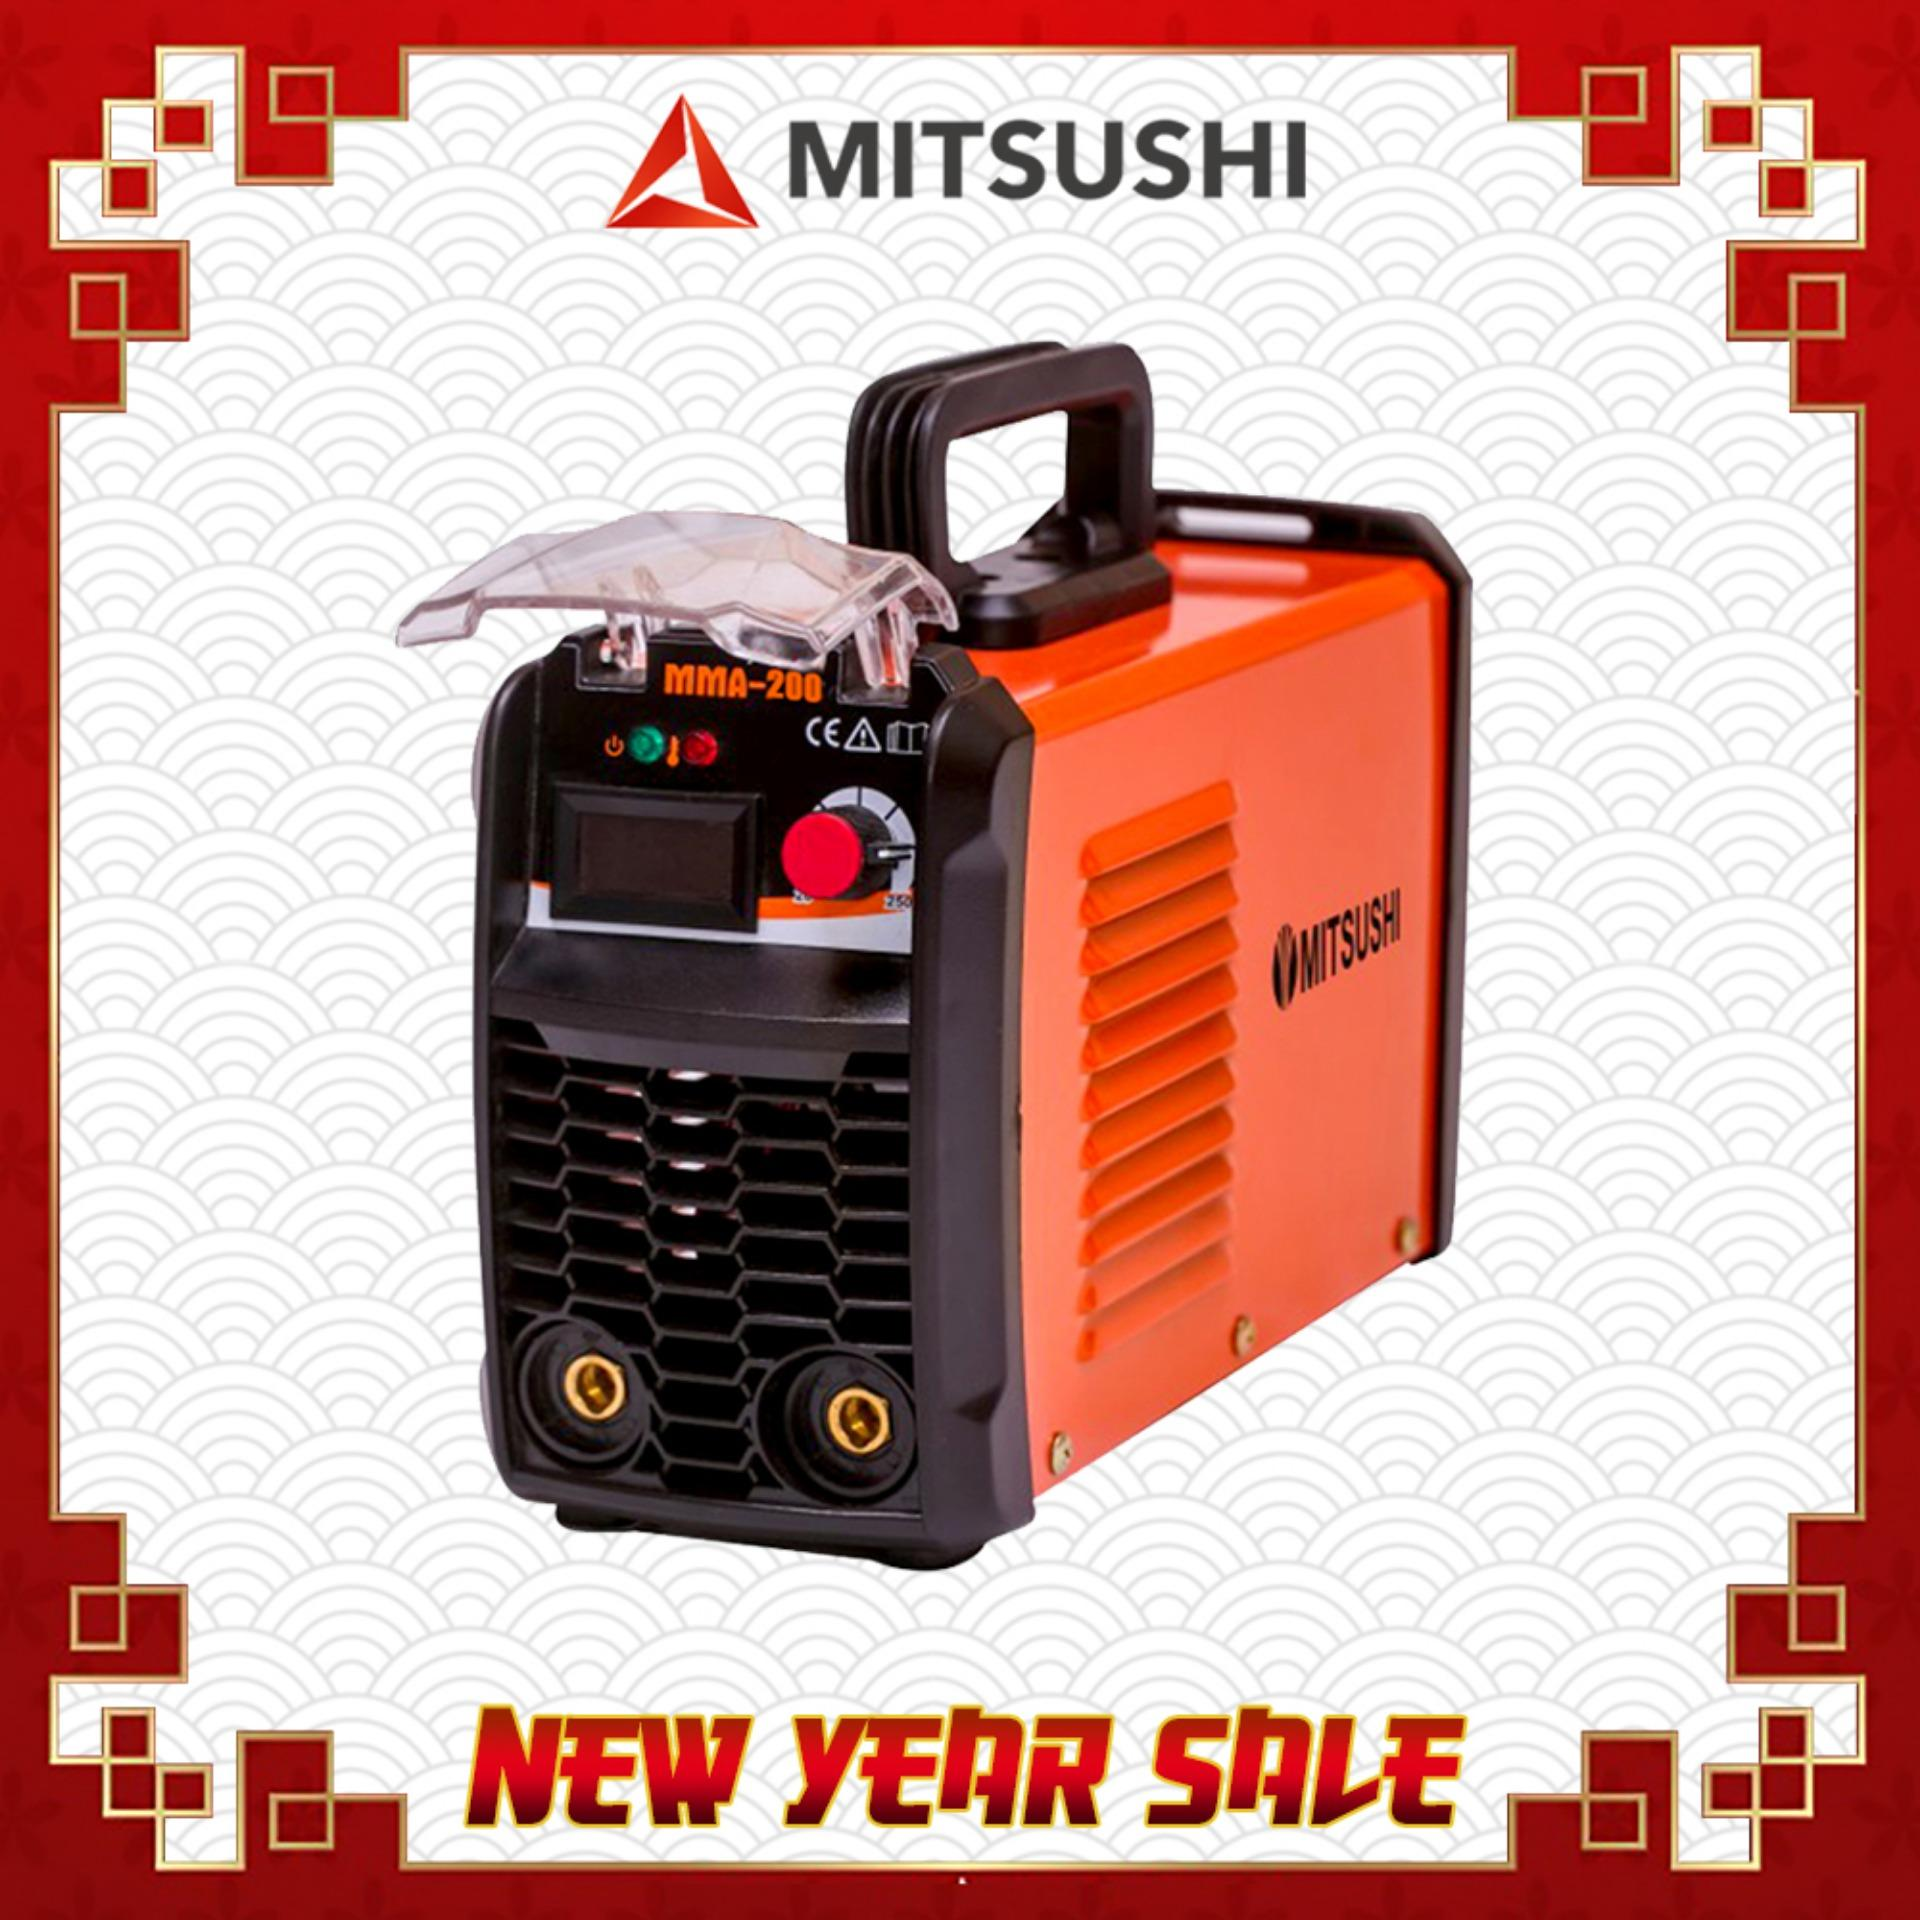 Welding For Sale Equipment Prices Brands Review In Accessory Kit Multi Purpose Circuit Board Tools Ebay Mitsushi Mit Mma 200a Igbt Technology Digital Display Inverter Machine